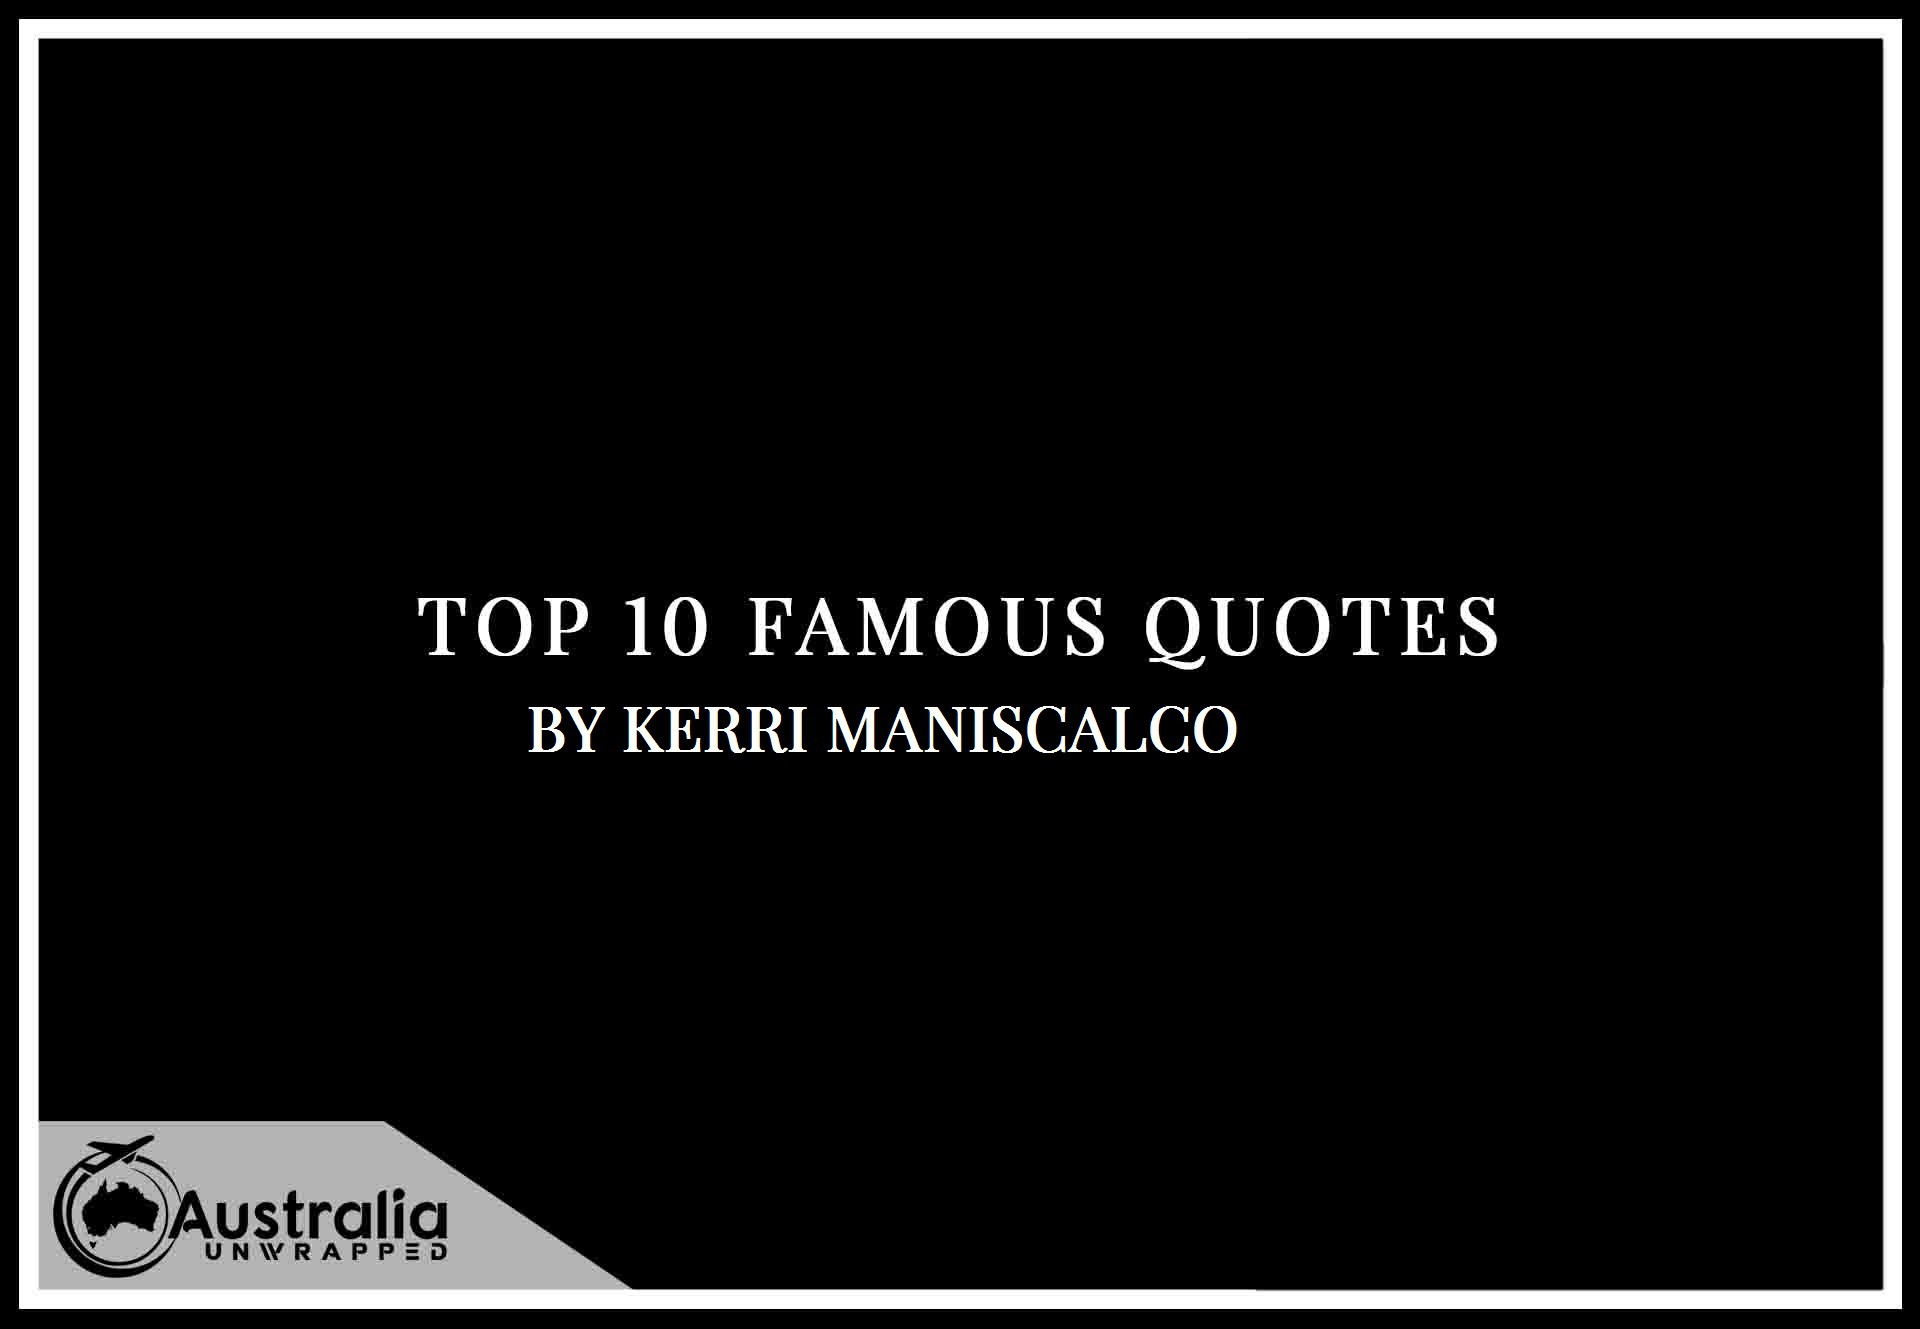 Kerri Maniscalco's Top 10 Popular and Famous Quotes